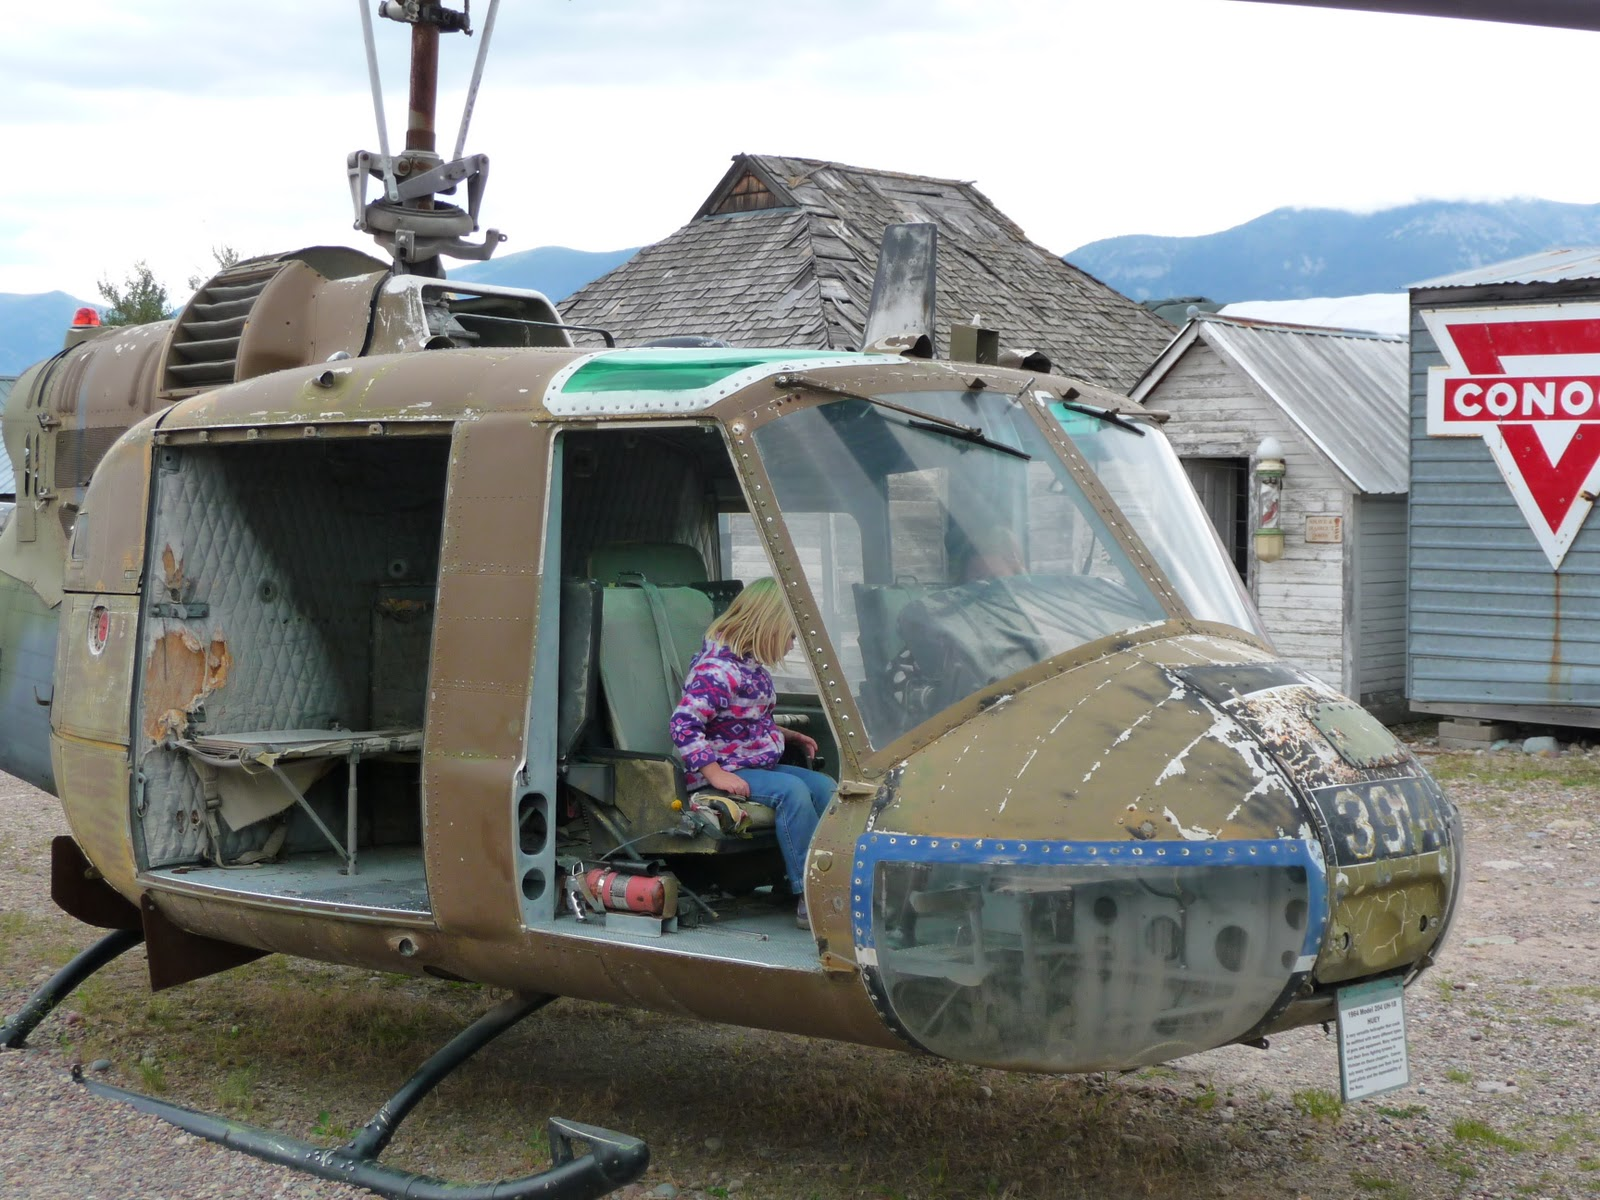 Huey Helicopter For Sale http://insideangelsattic.blogspot.com/2010/08/pure-pleasure.html